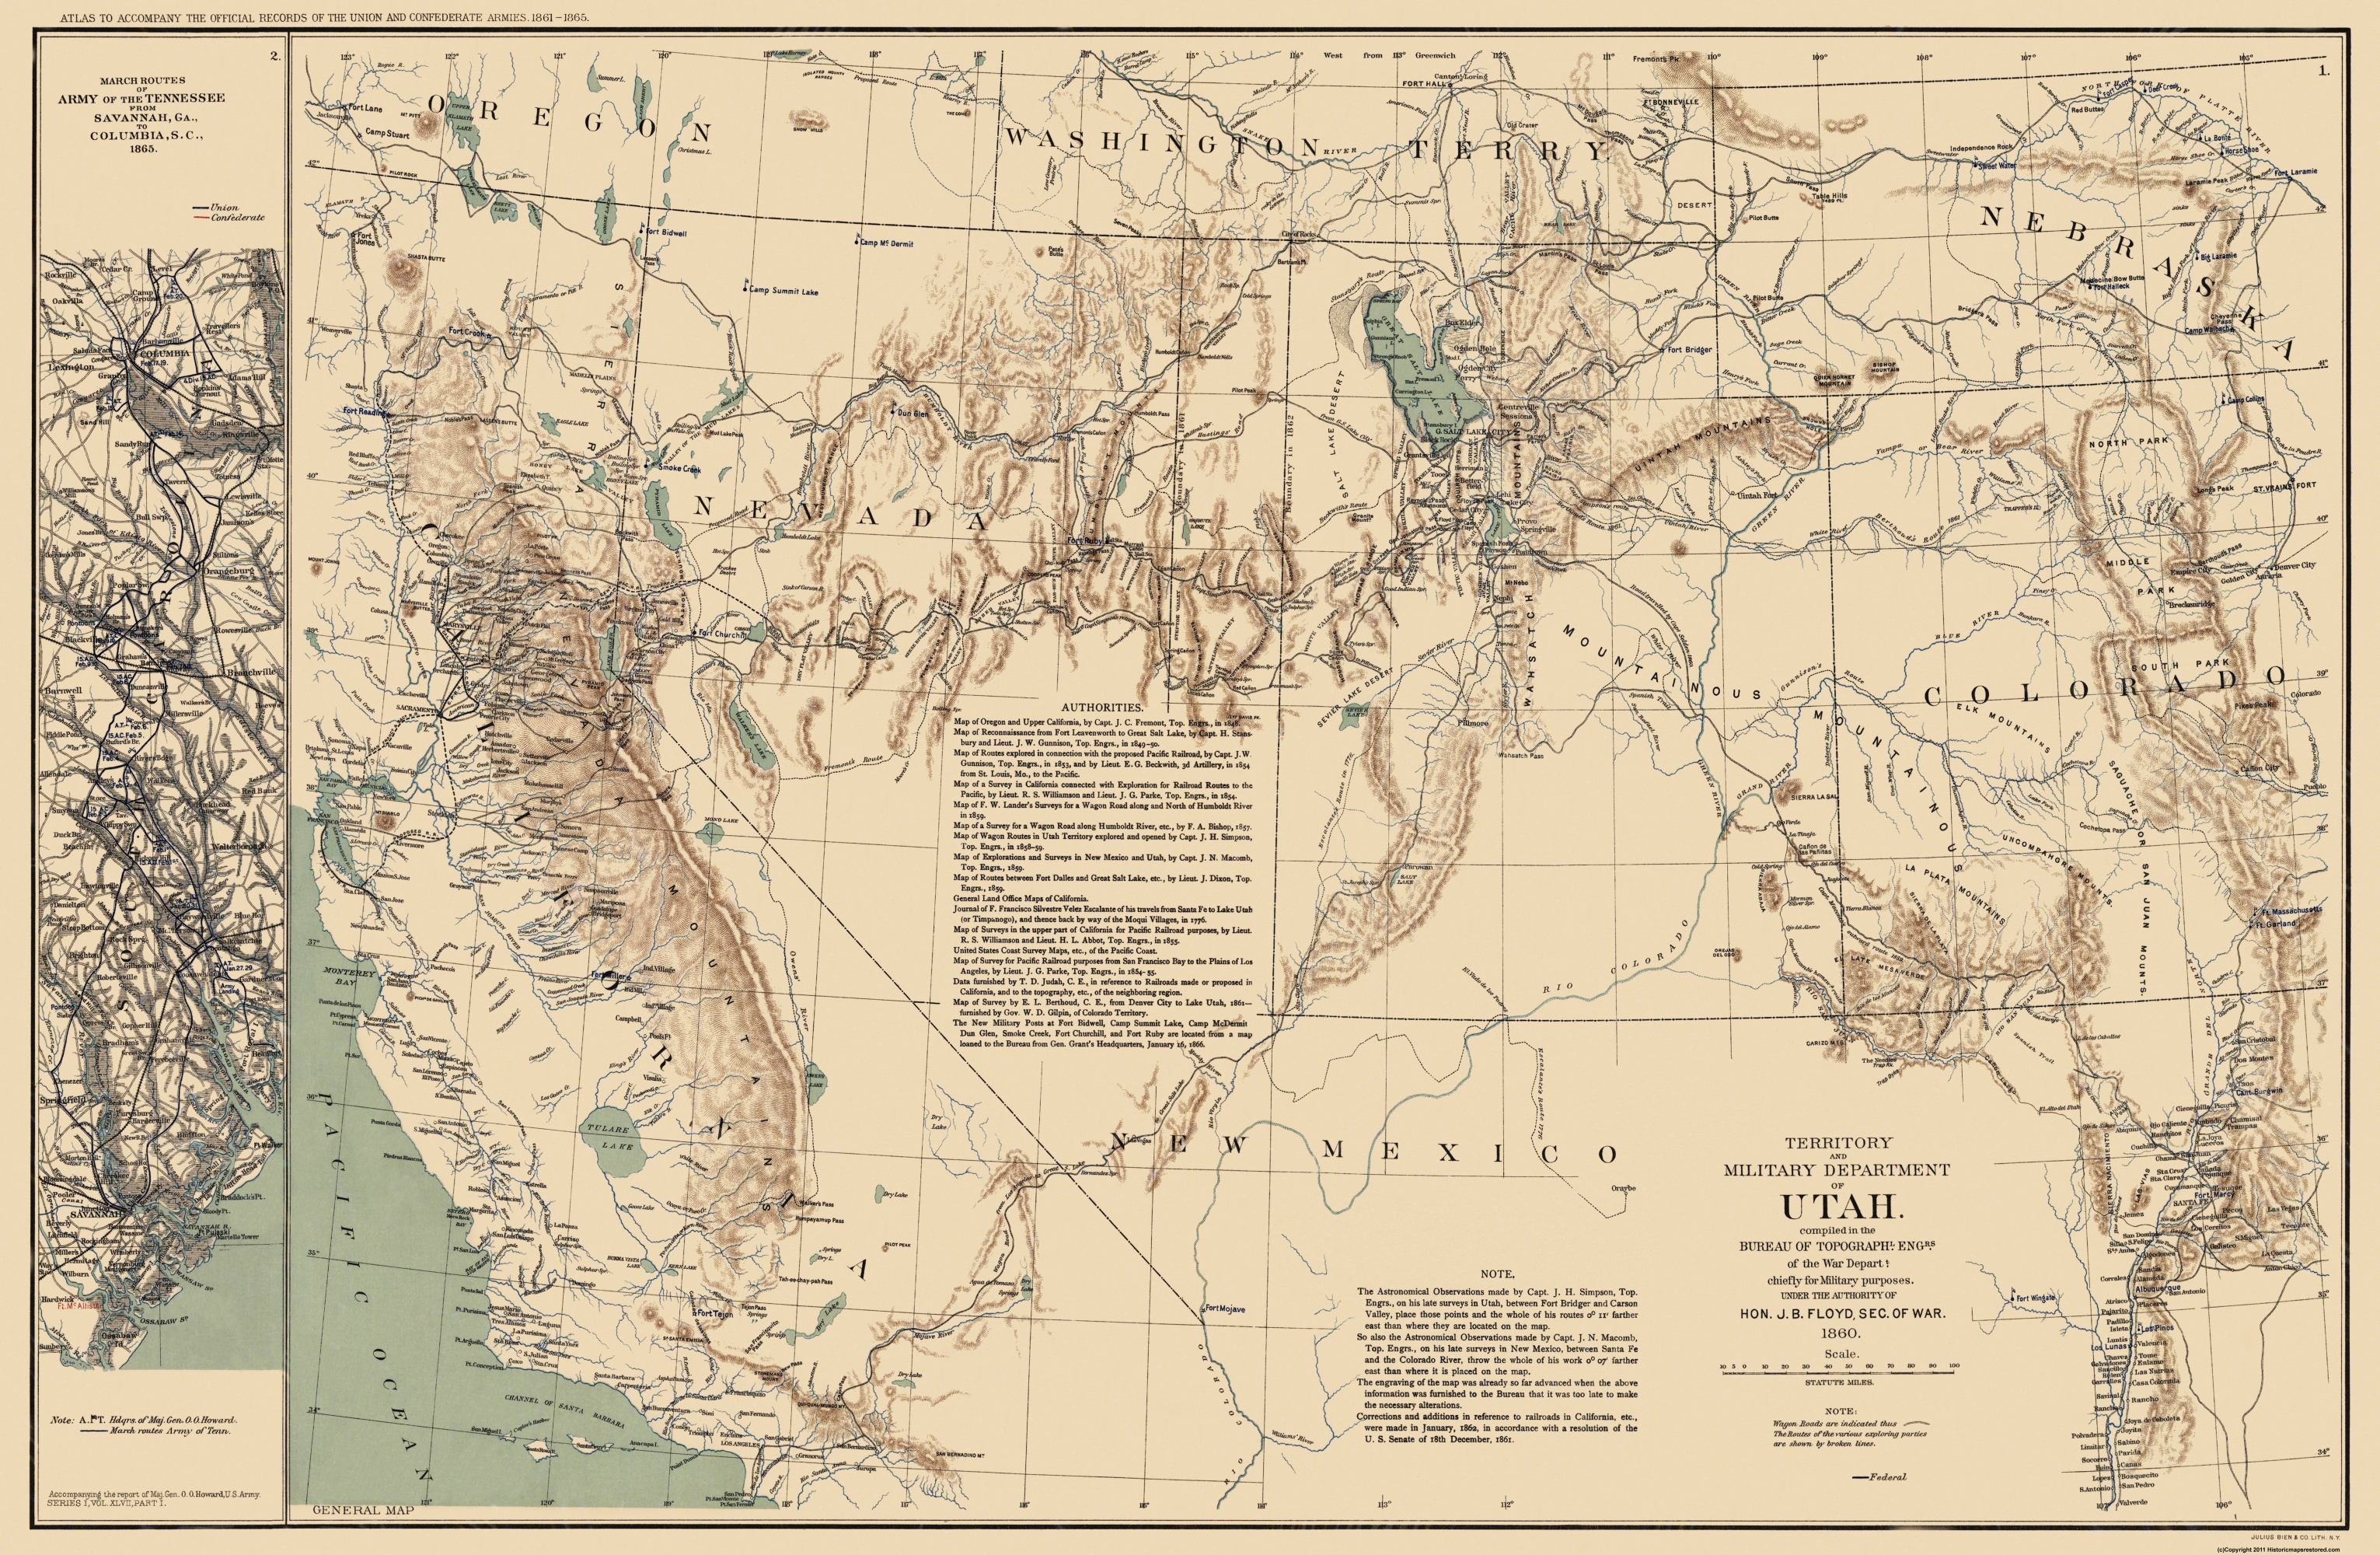 Old State Map Utah Territory US War Dept - Salt lake city map of us